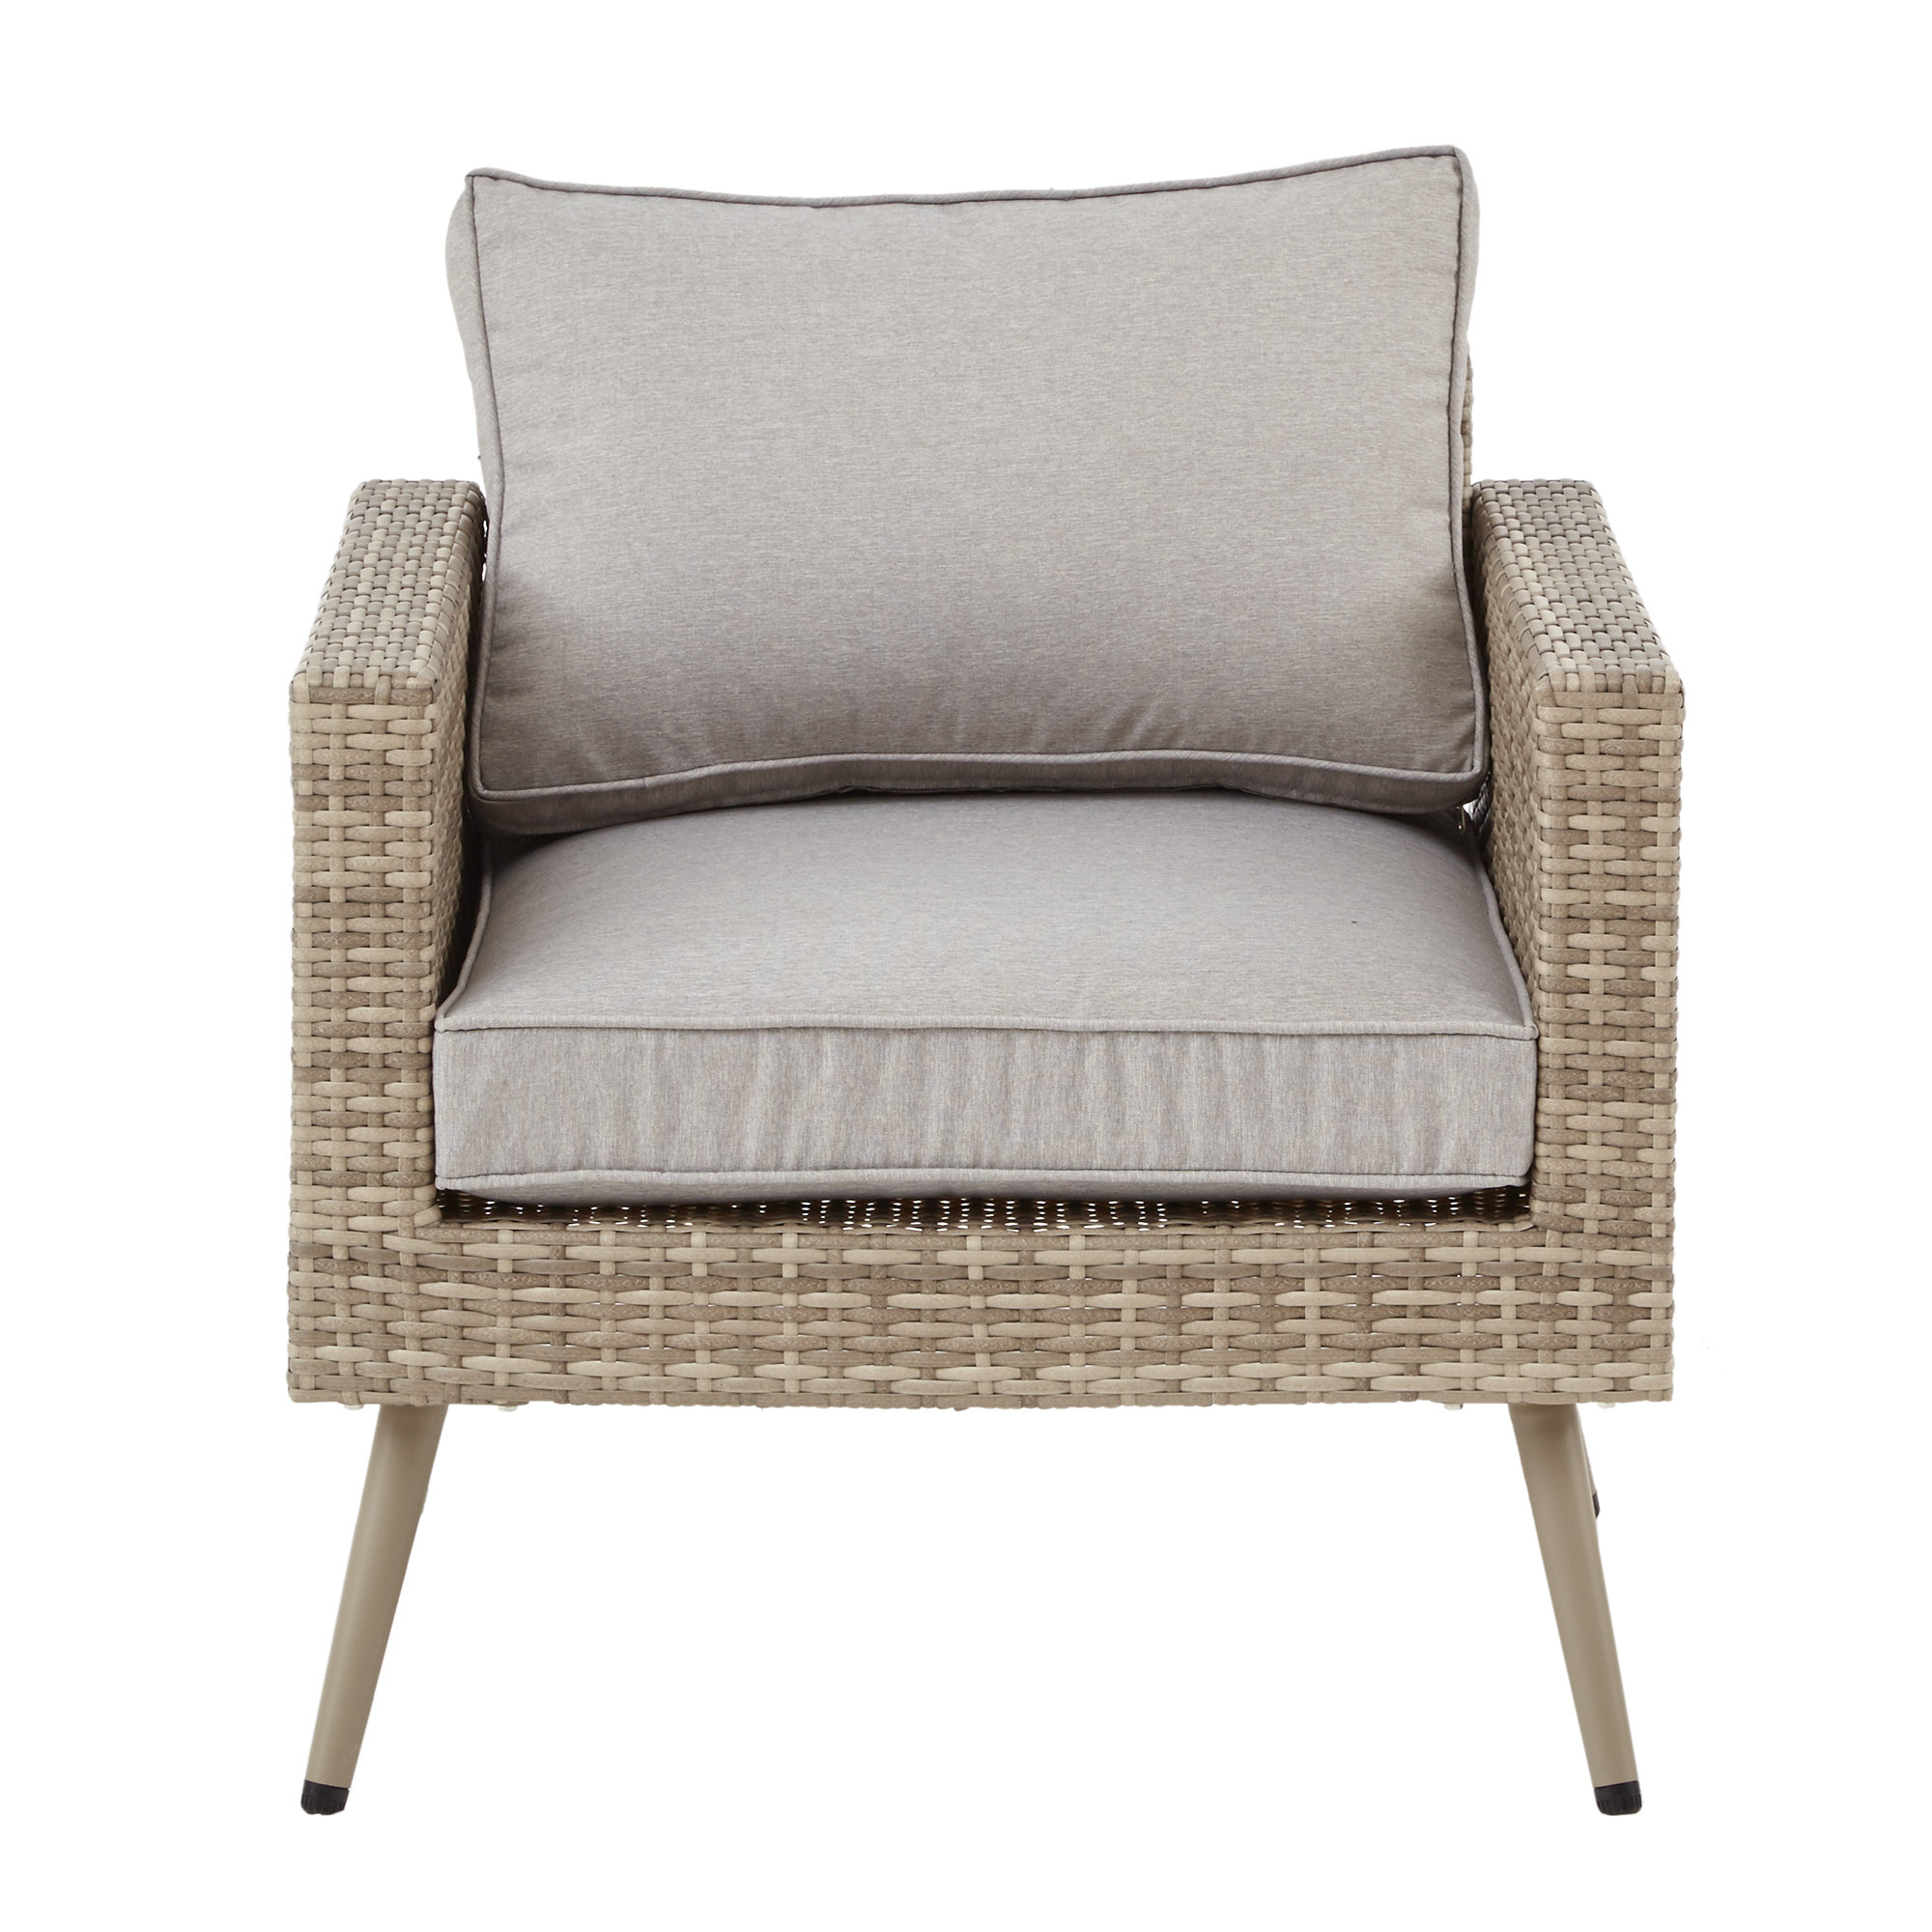 Pantano Lounge Chair With Cushions With Famous Pantano Loveseats With Cushions (View 15 of 20)